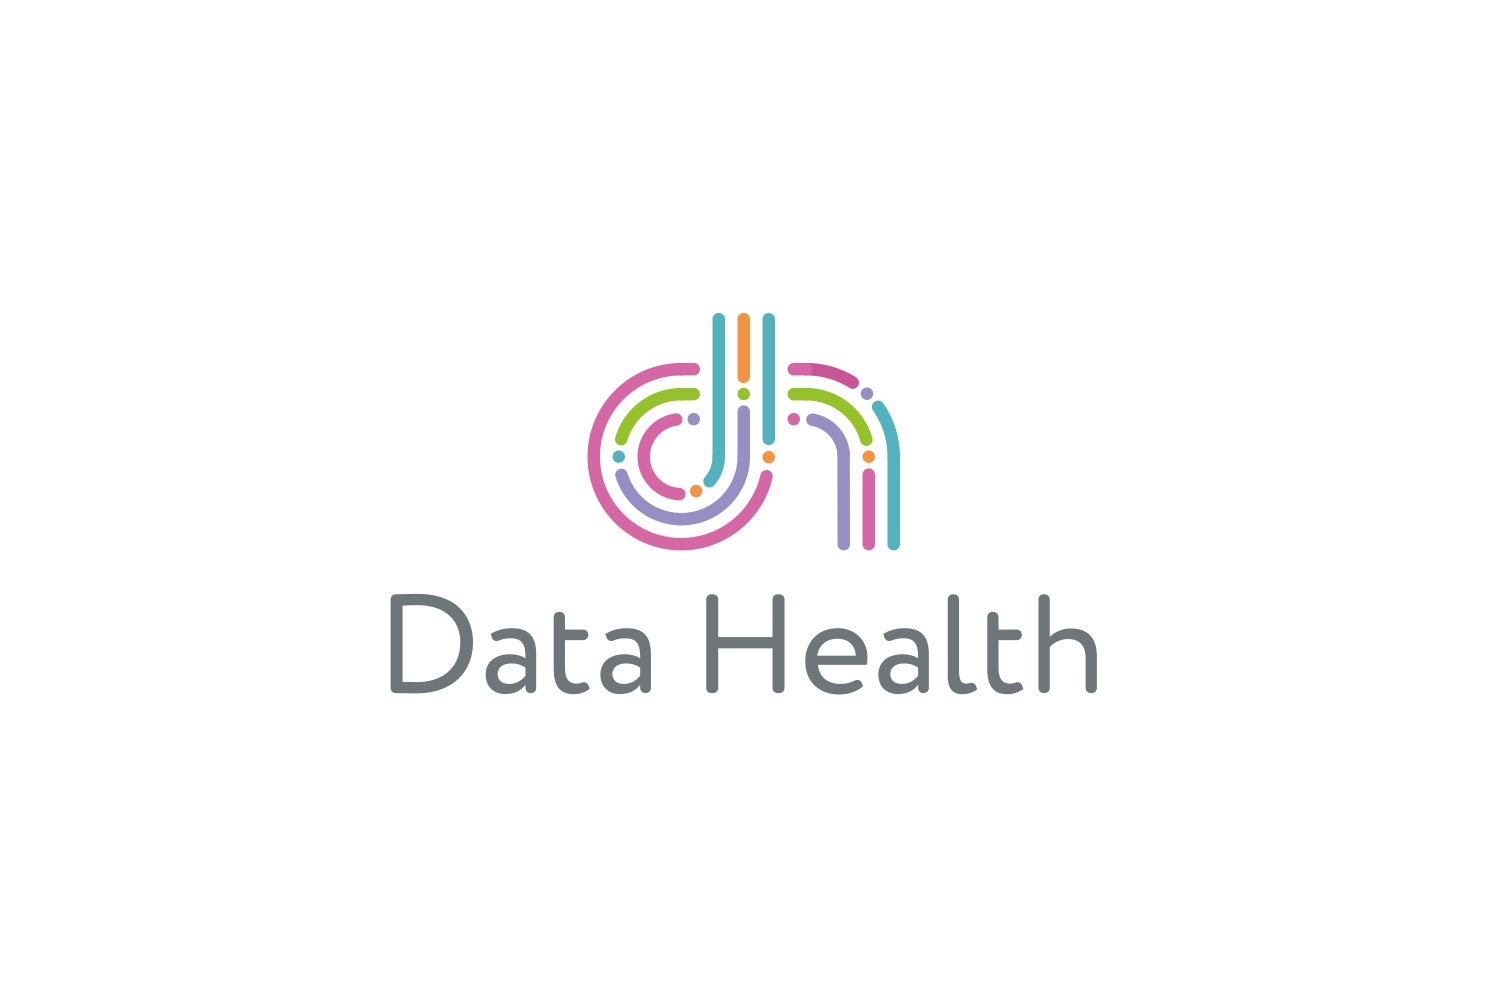 Data Health 2.jpg title=